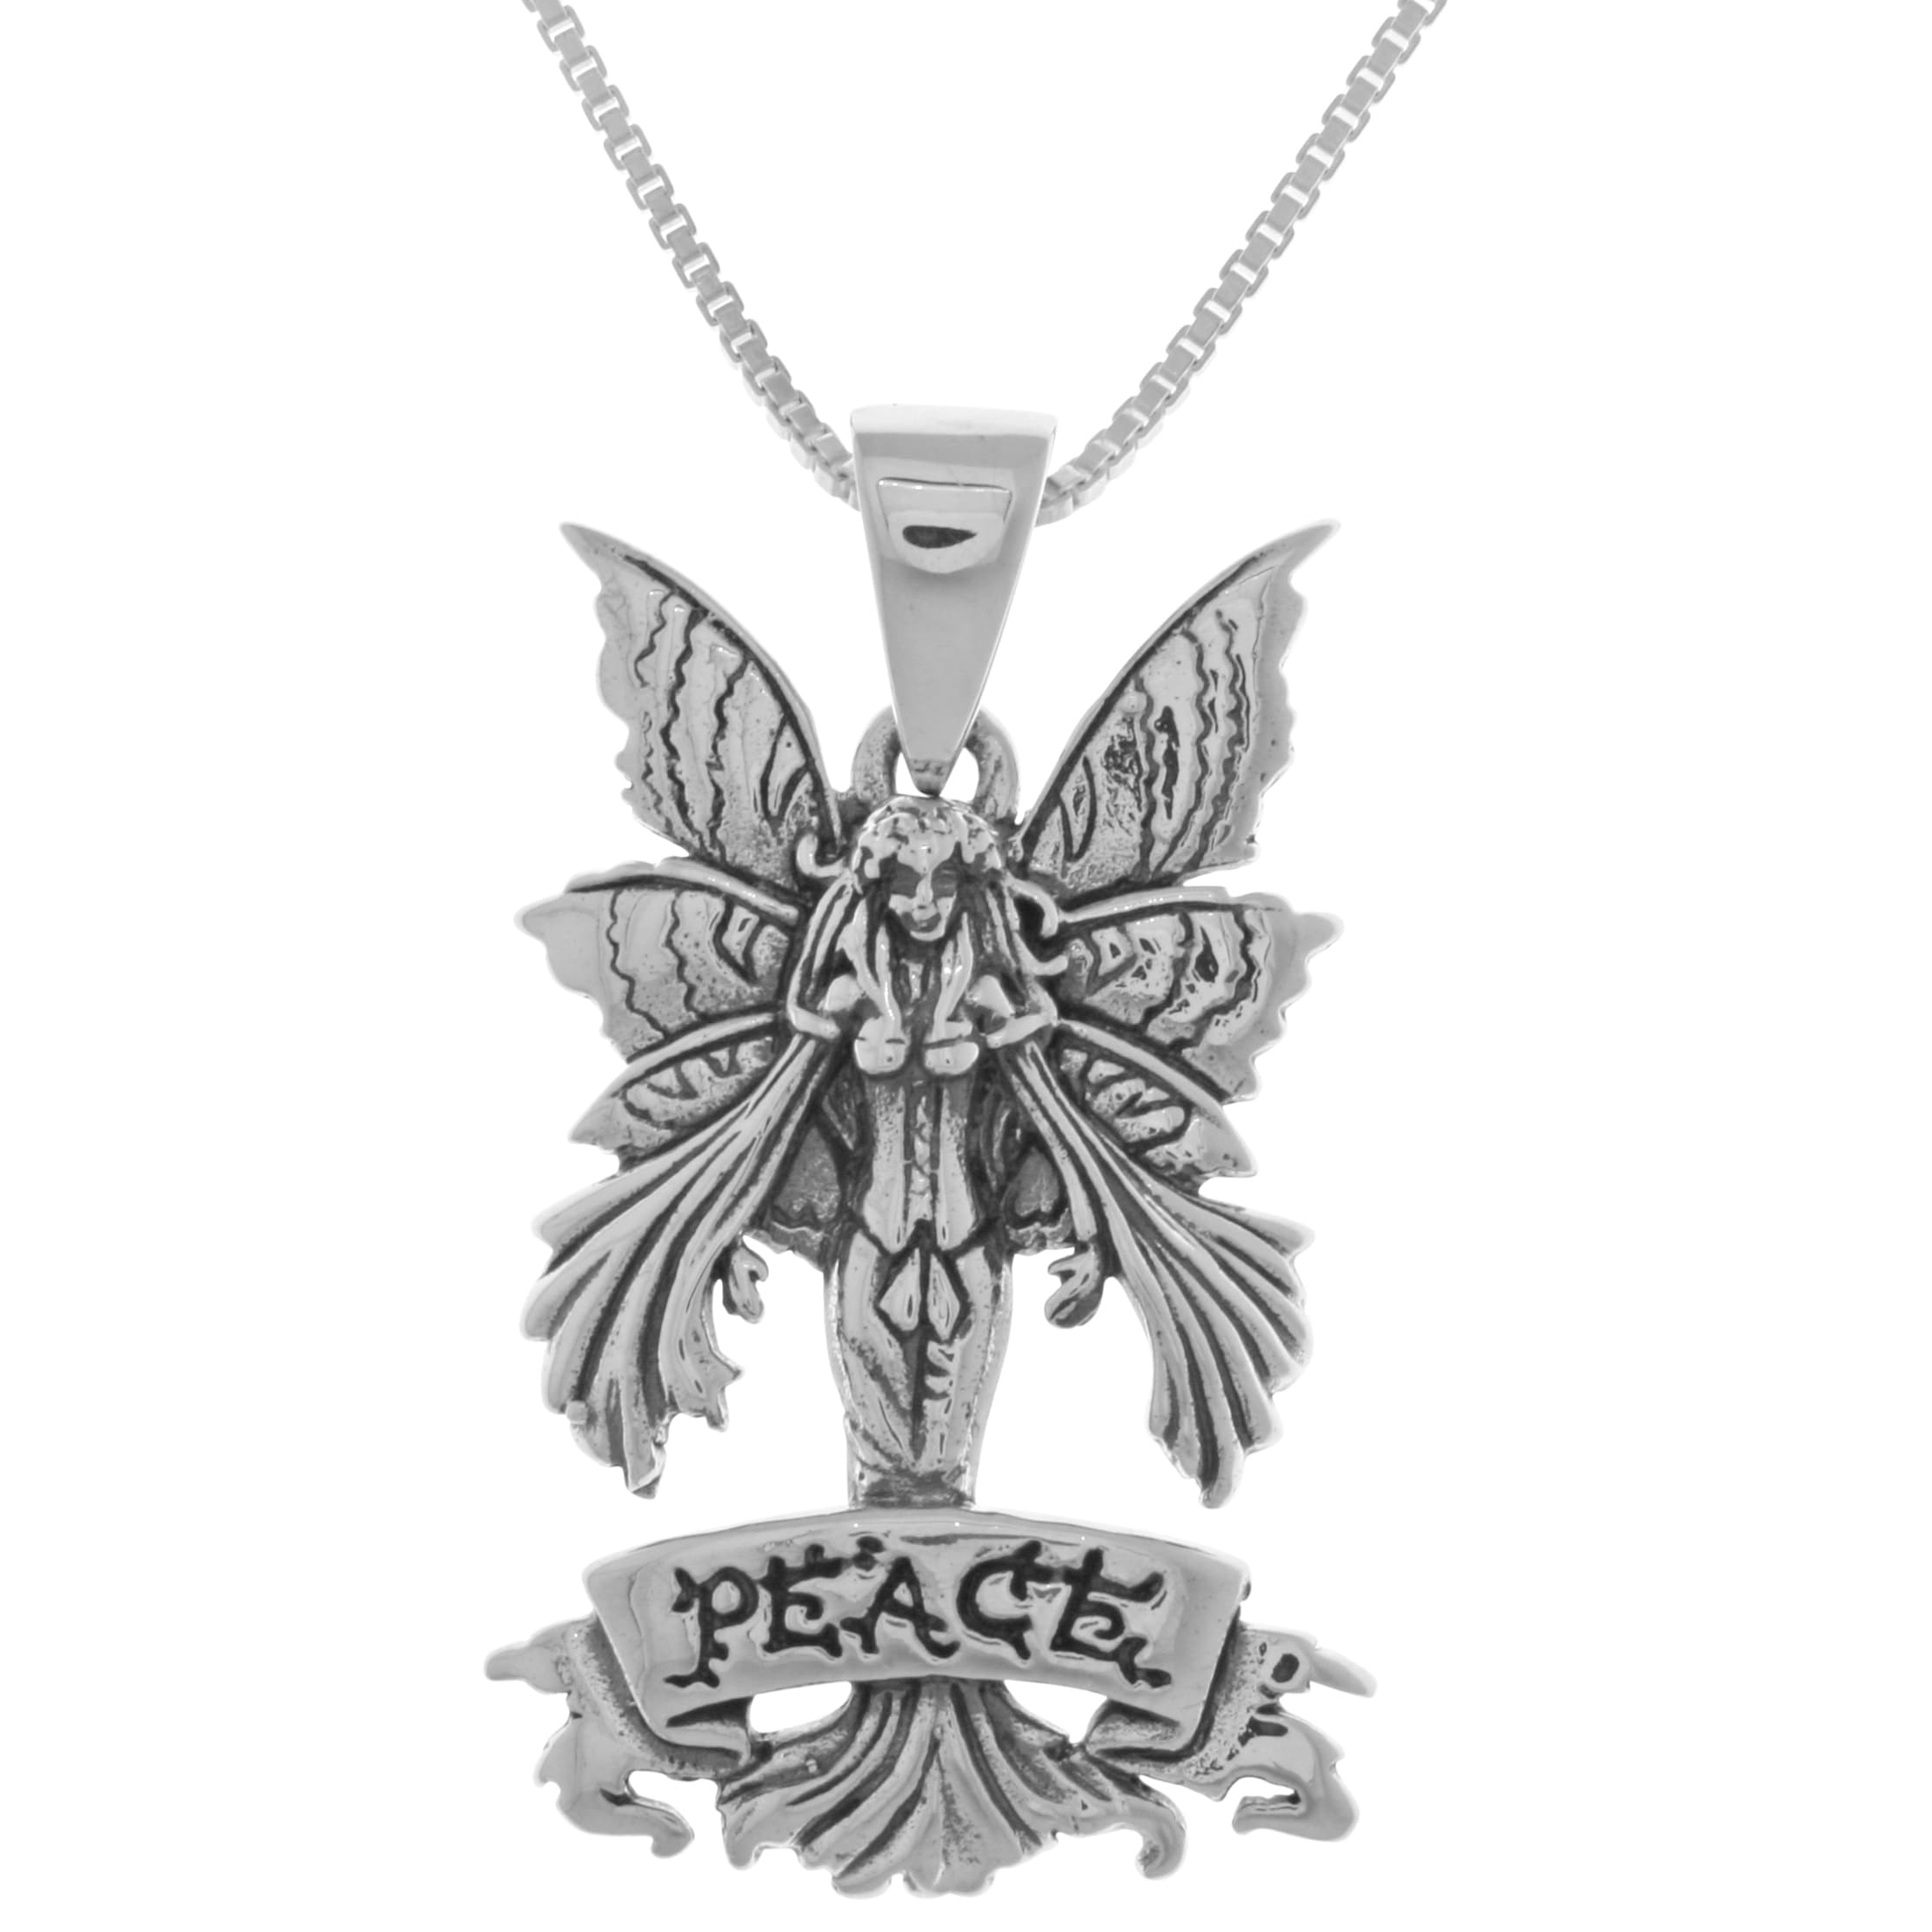 l pewter jnt necklace pendant peace silver trendy sign jewelry itm ebay charm